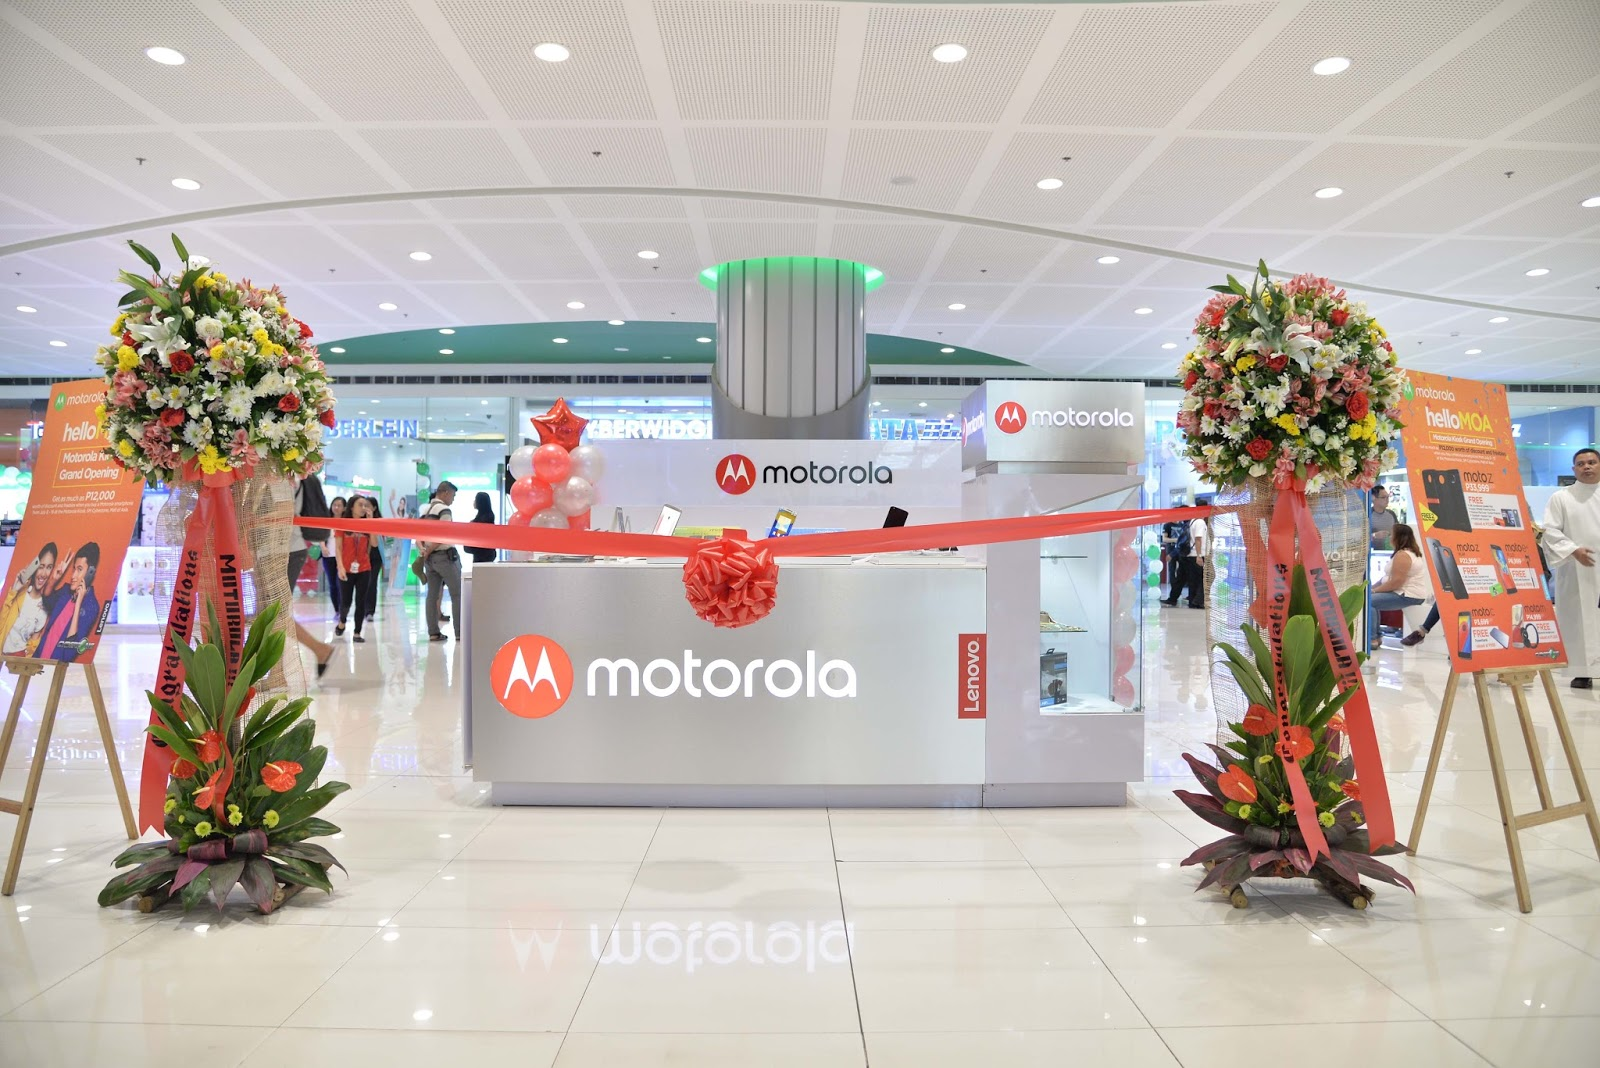 Say #HelloMOA and drop by the new Moto kiosk to score exclusive deals and freebies from July 8 -16!